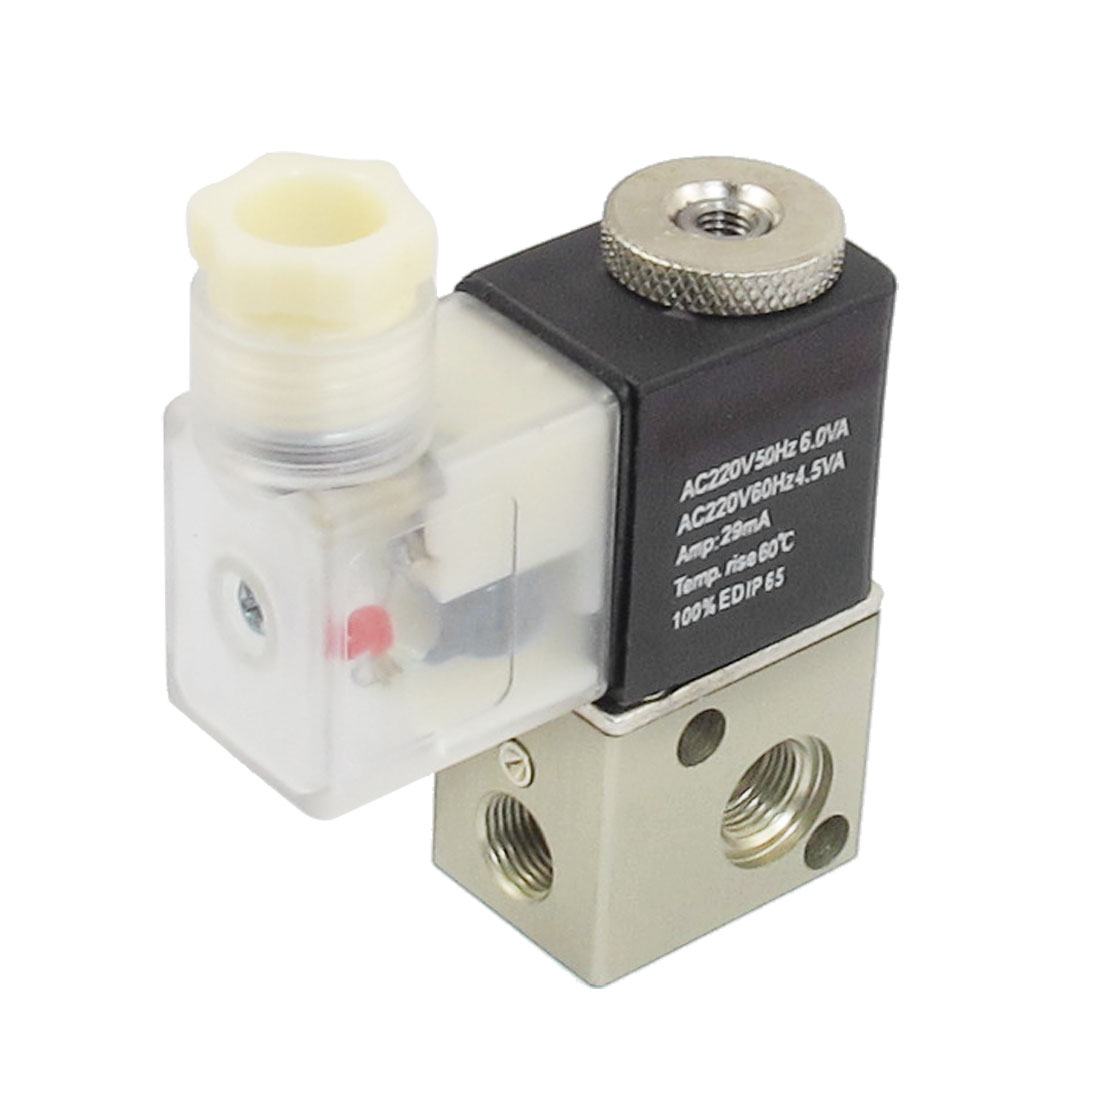 AC 220V 2 Position 3 Way Pneumatic Electromagnetic Solenoid Valve G1/8""